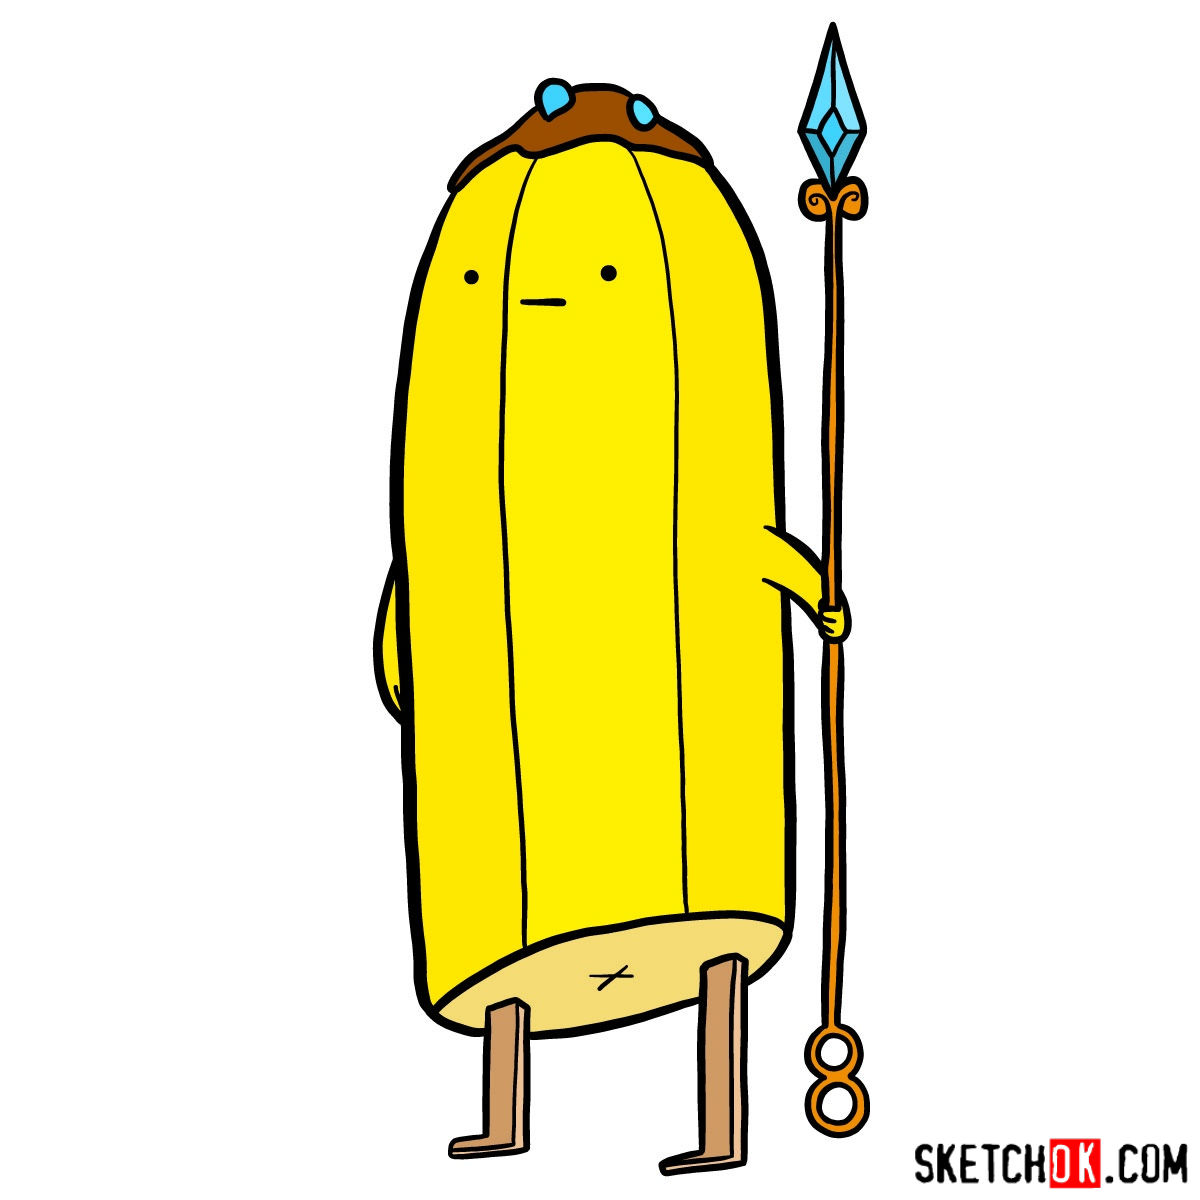 How to draw Banana Guards from Adventure Time